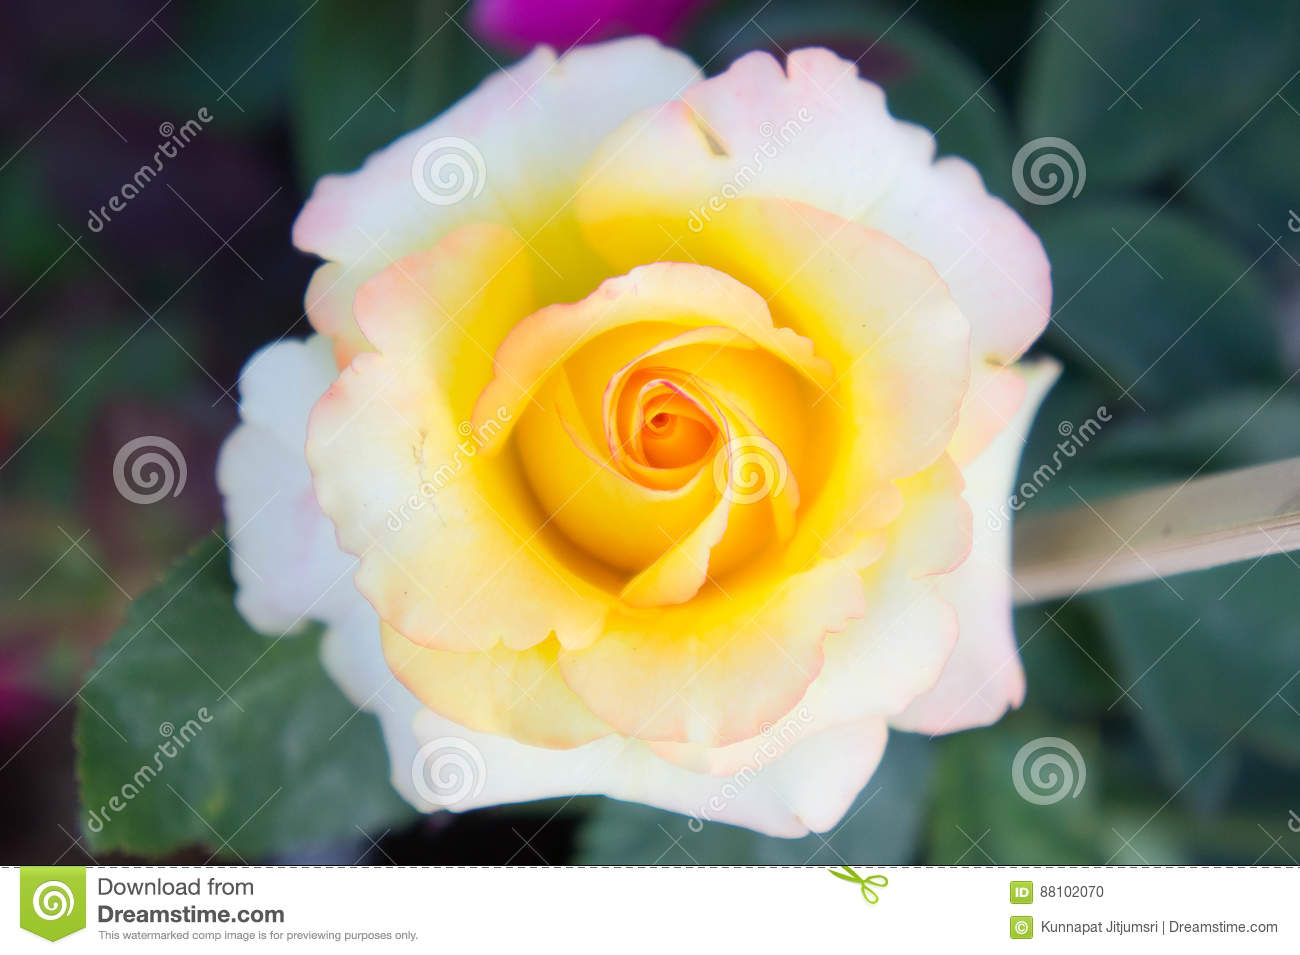 Roses yellow flowers in the garden yellow beautiful flowers stock roses yellow flowers in the garden yellow beautiful flowers izmirmasajfo